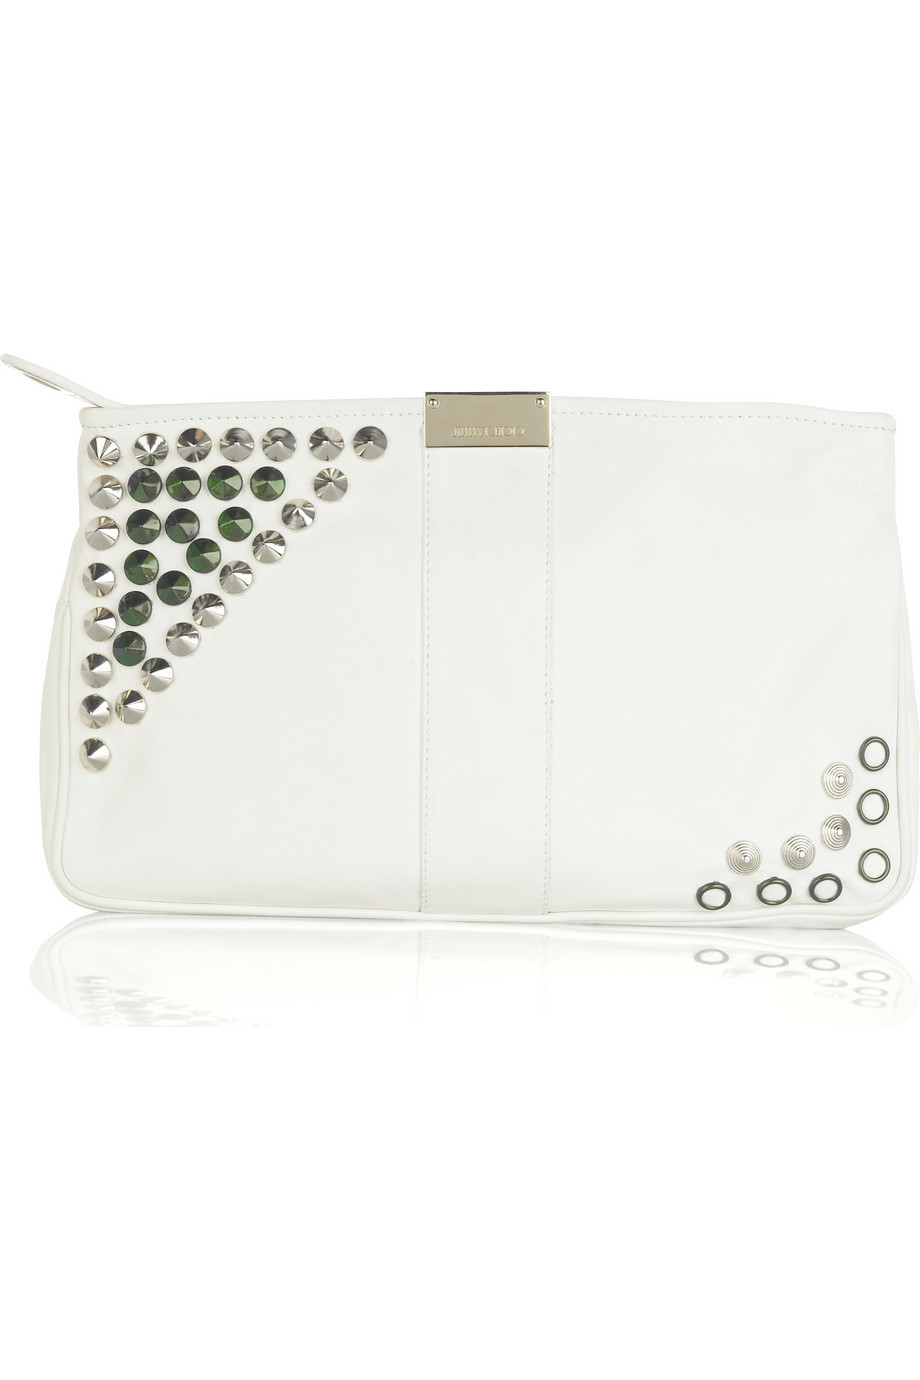 Jimmy Choo Zulu soft clutch  | NET-A-PORTER.COM from net-a-porter.com